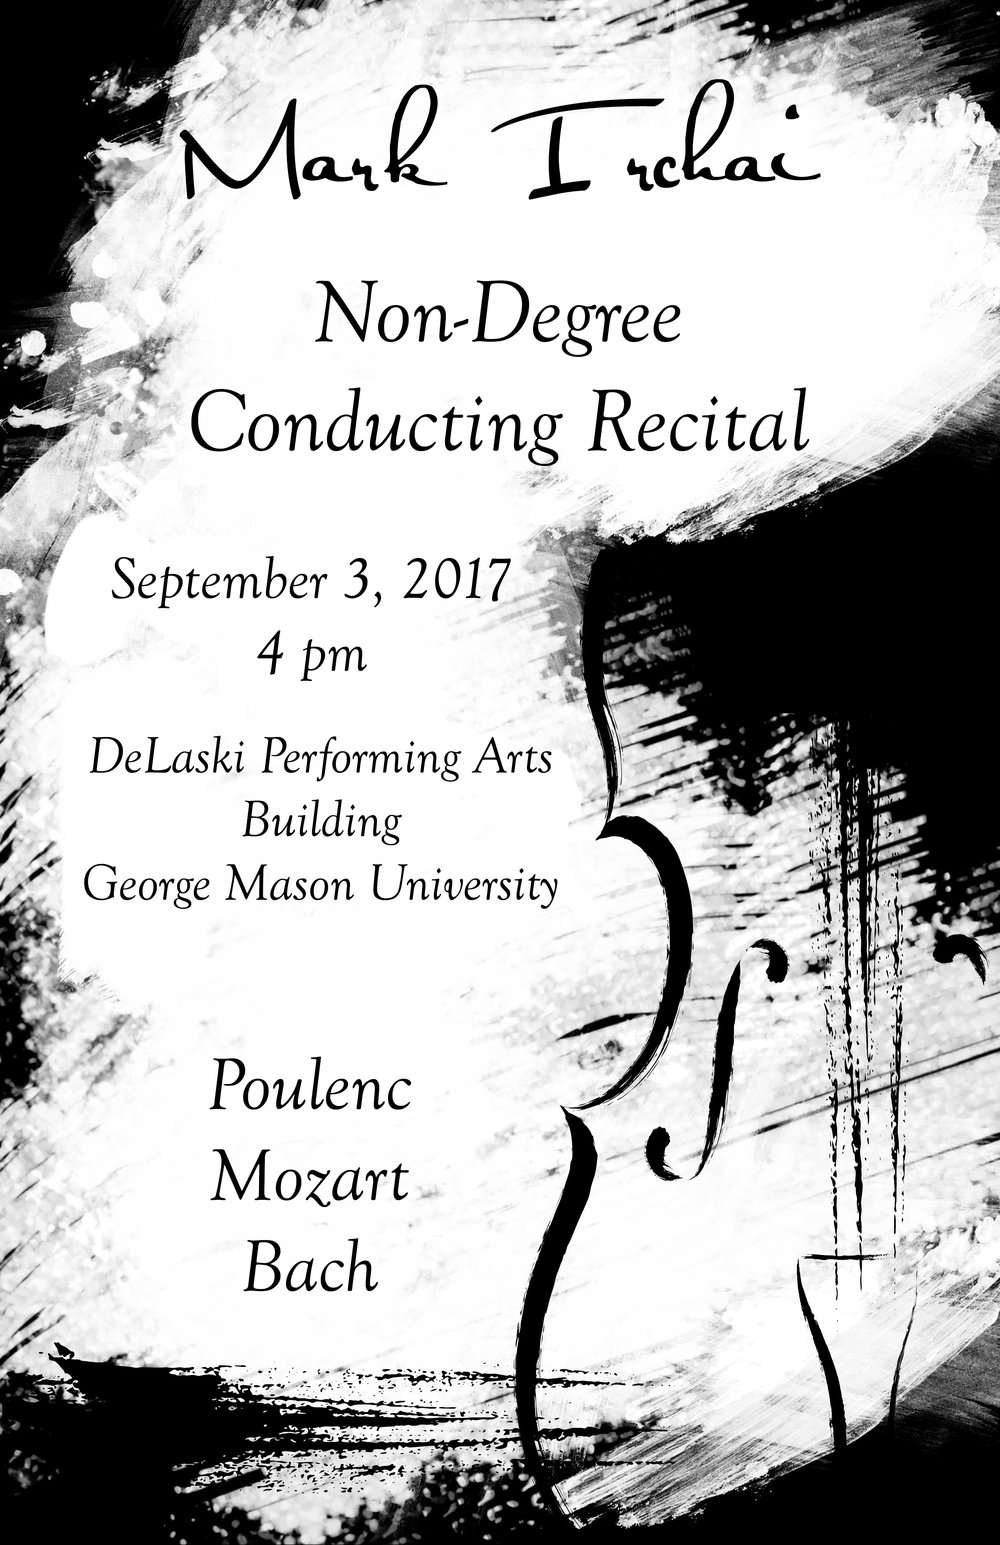 Join me... - ...for a wonderful conducting recital at George Mason University! This will be featuring a chamber orchestra mixed of students and professionals from the DC area. Admission is entirely free and open to the public.Program:Francis Poulenc - Deux Marches et IntermedeWolfgang Amadeus Mozart - Piano Concerto No. 23J. S. Bach - Orchestral Suite No. 1